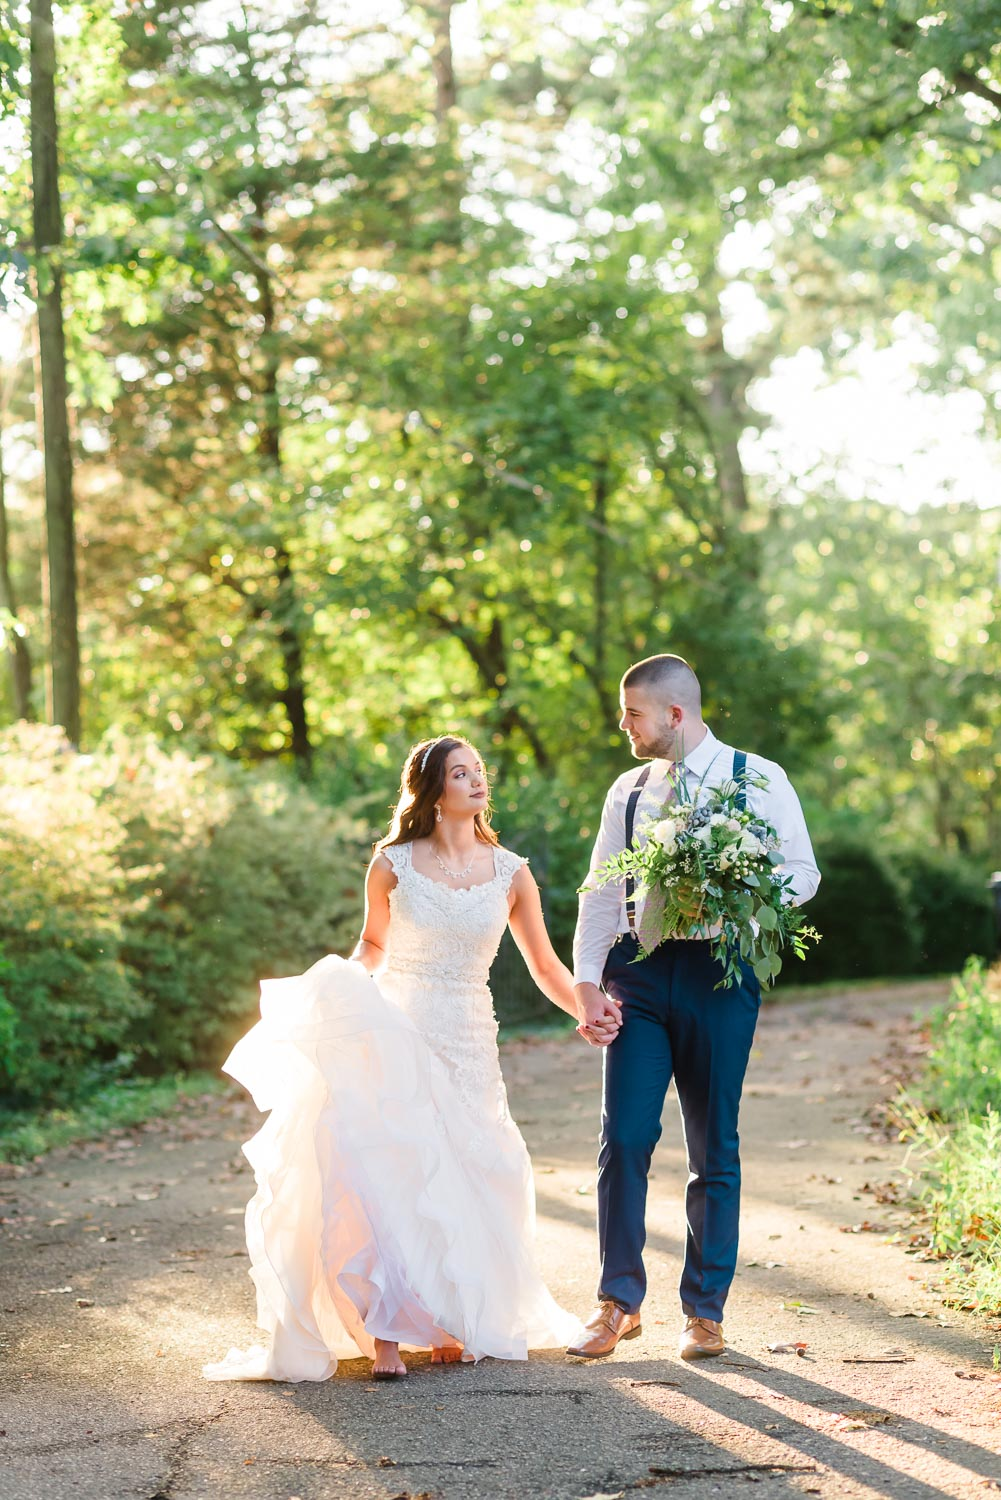 wedding couple walking down path in Knoxville at their september wedding before the leaves change